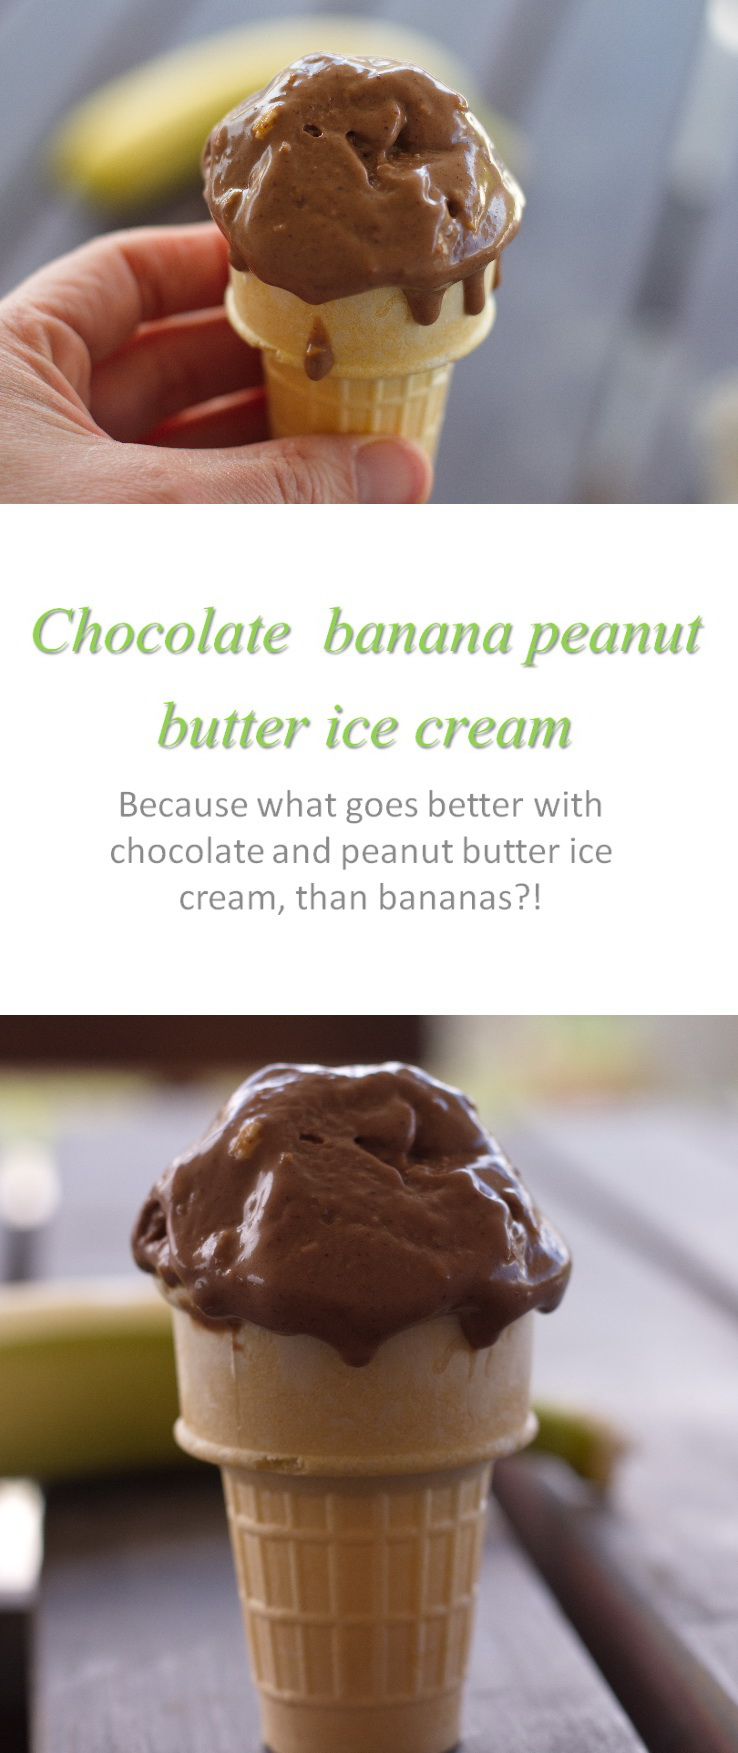 This chocolate banana peanut butter ice cream takes chocolate and peanut butter ice cream to another level with the additional banana in it! #icecream #cookathome #glutenfree #dairyfree #vegan